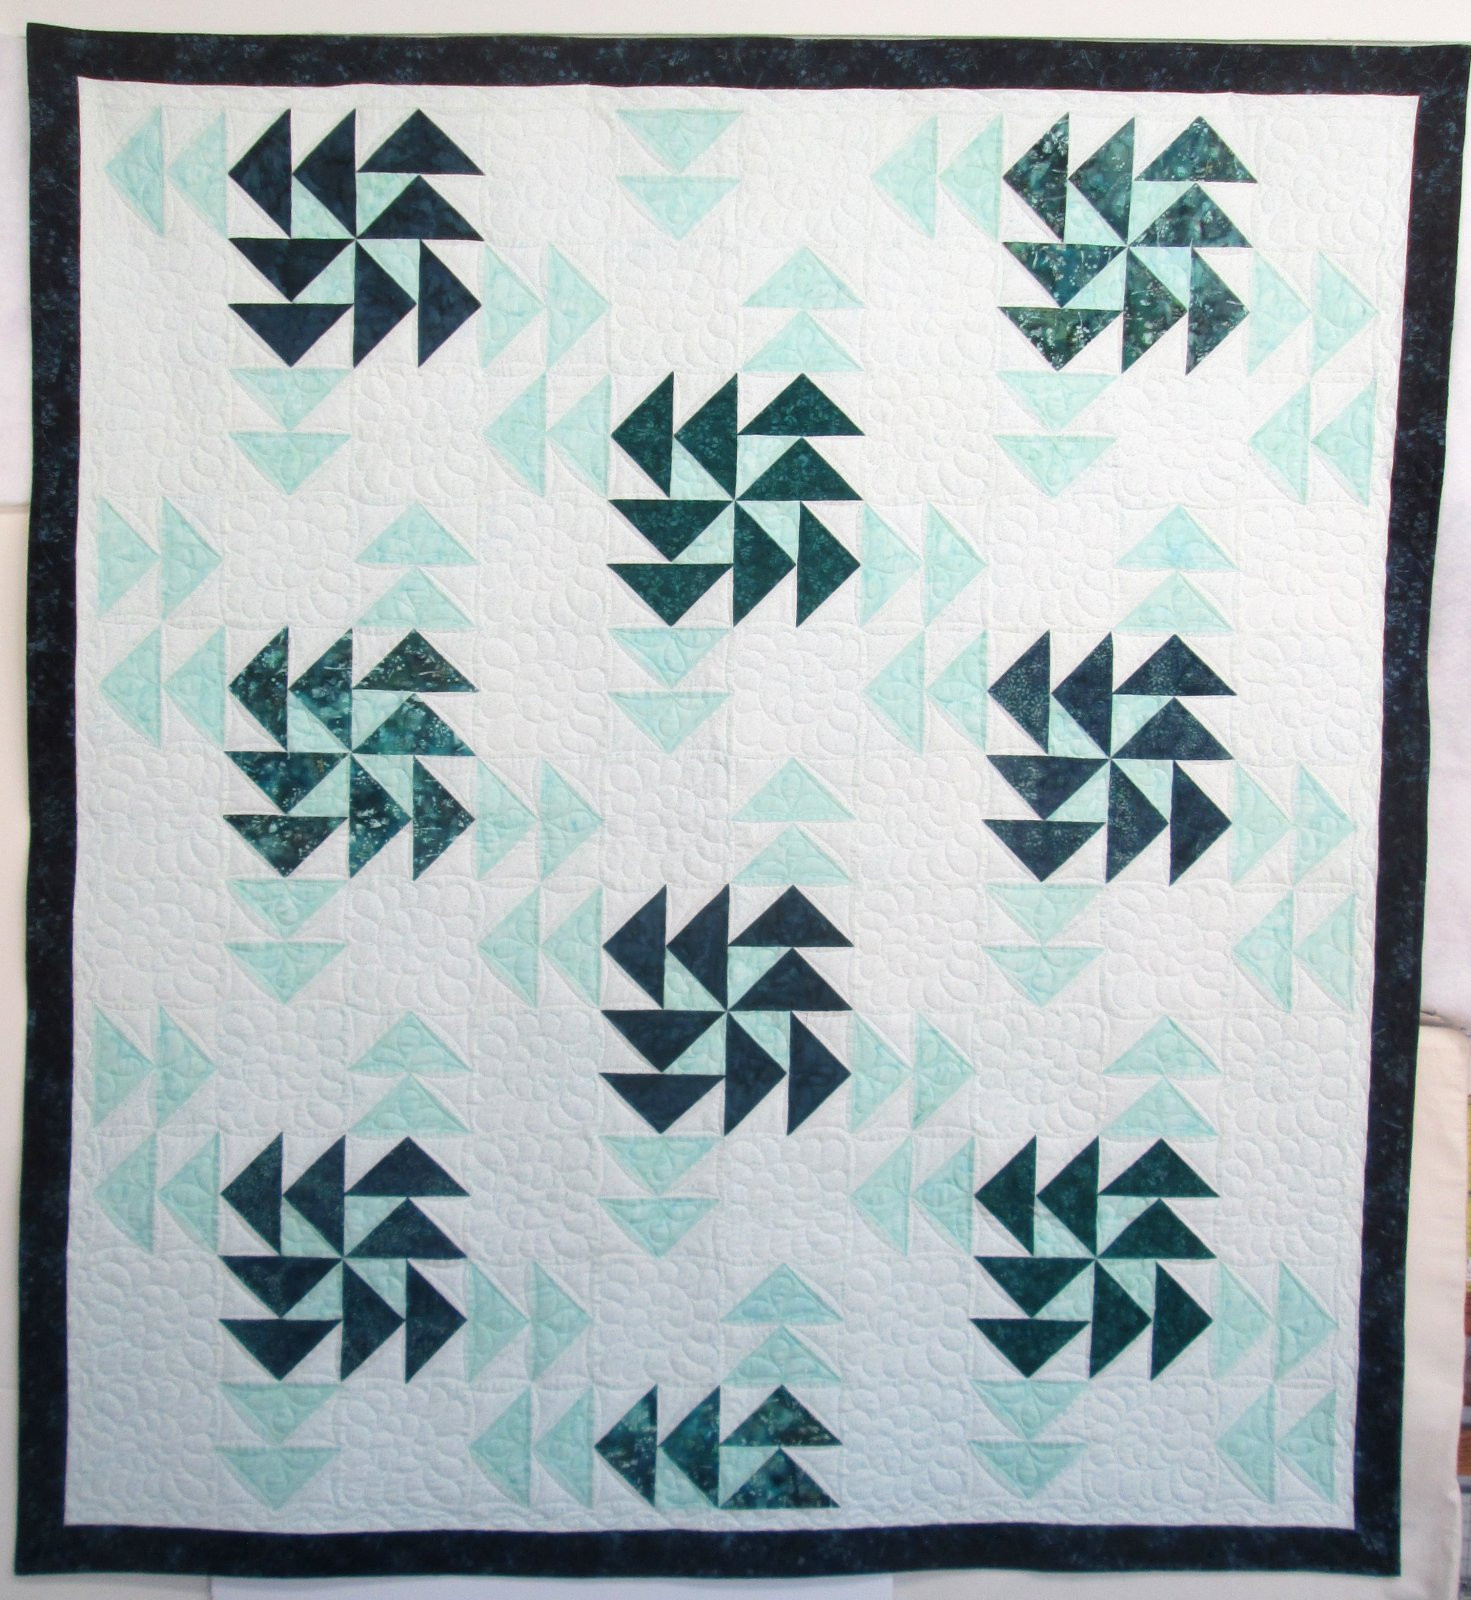 Bali Spinning Geese Quilt 66 x 72  includes pattern & binding